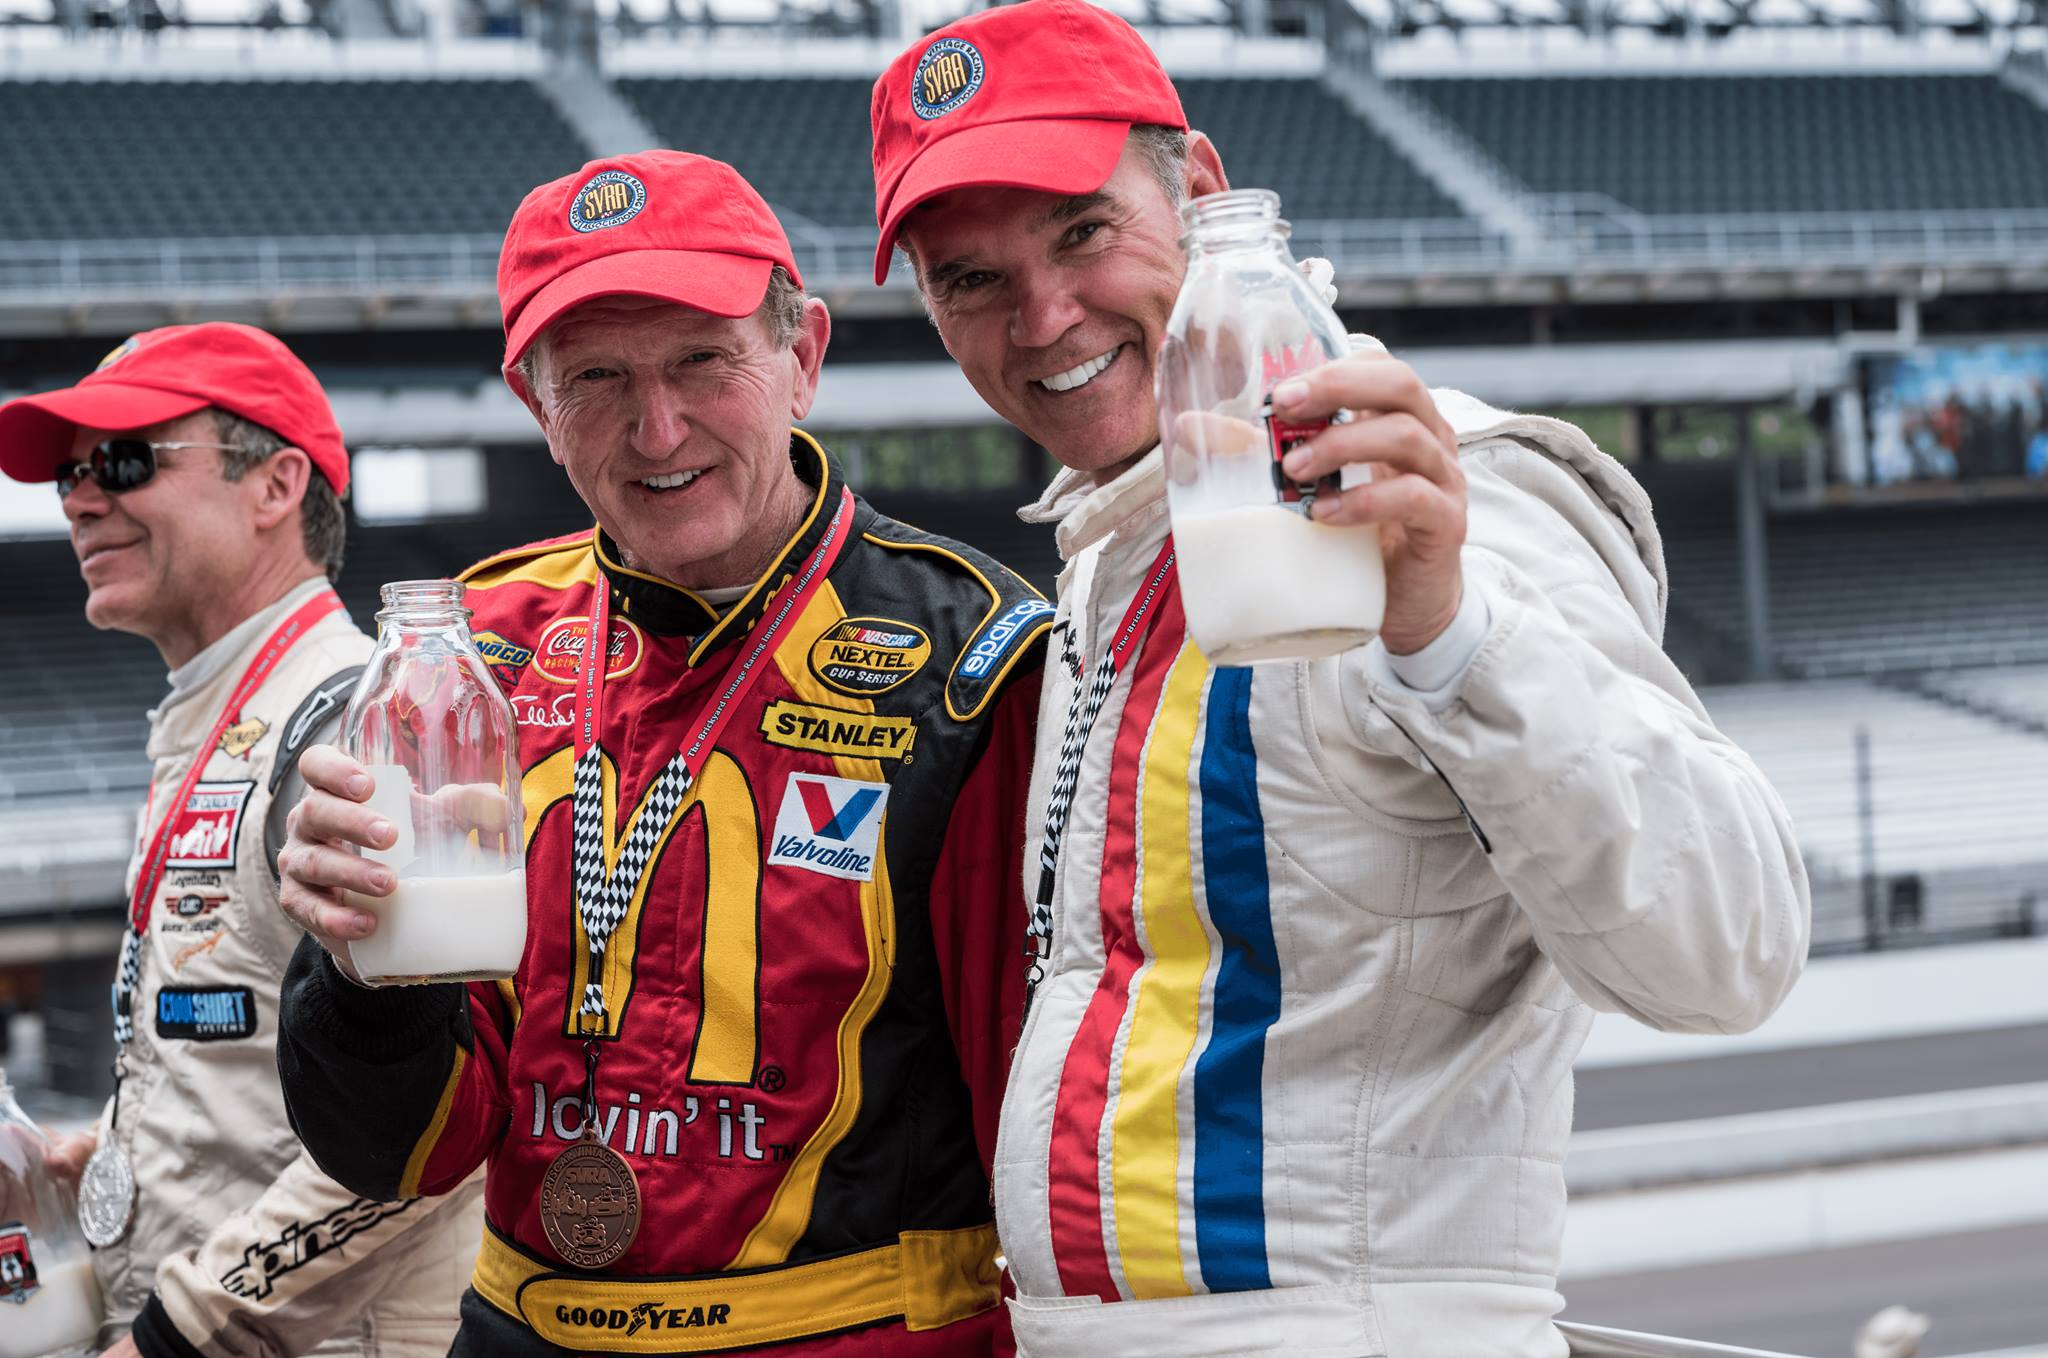 Bill Elliott and Ray Evernham in 2017